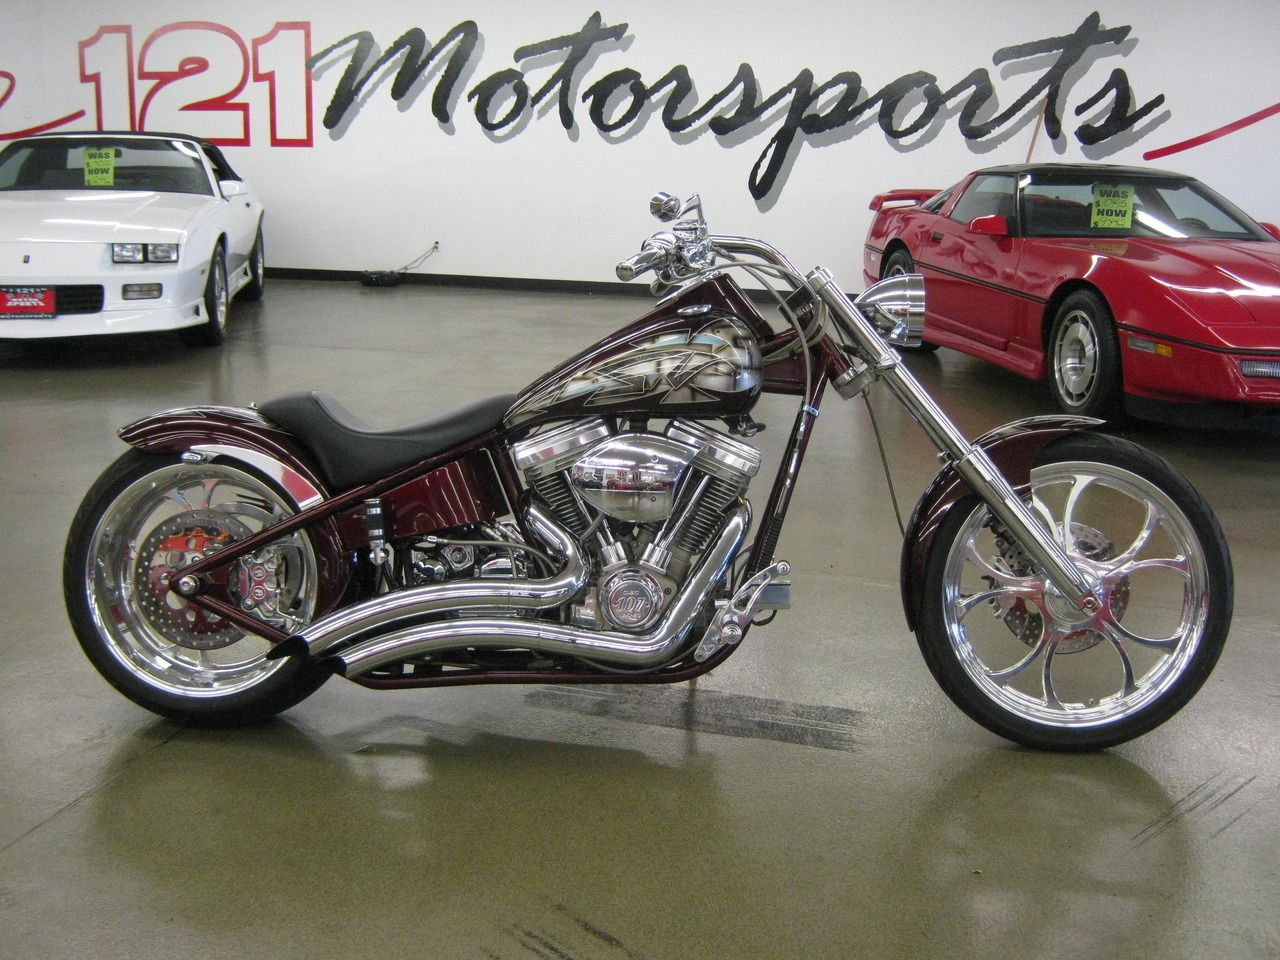 2002 global big dog motorcycles brand inquiry motorcycles pitbull motorcycle brand new market price